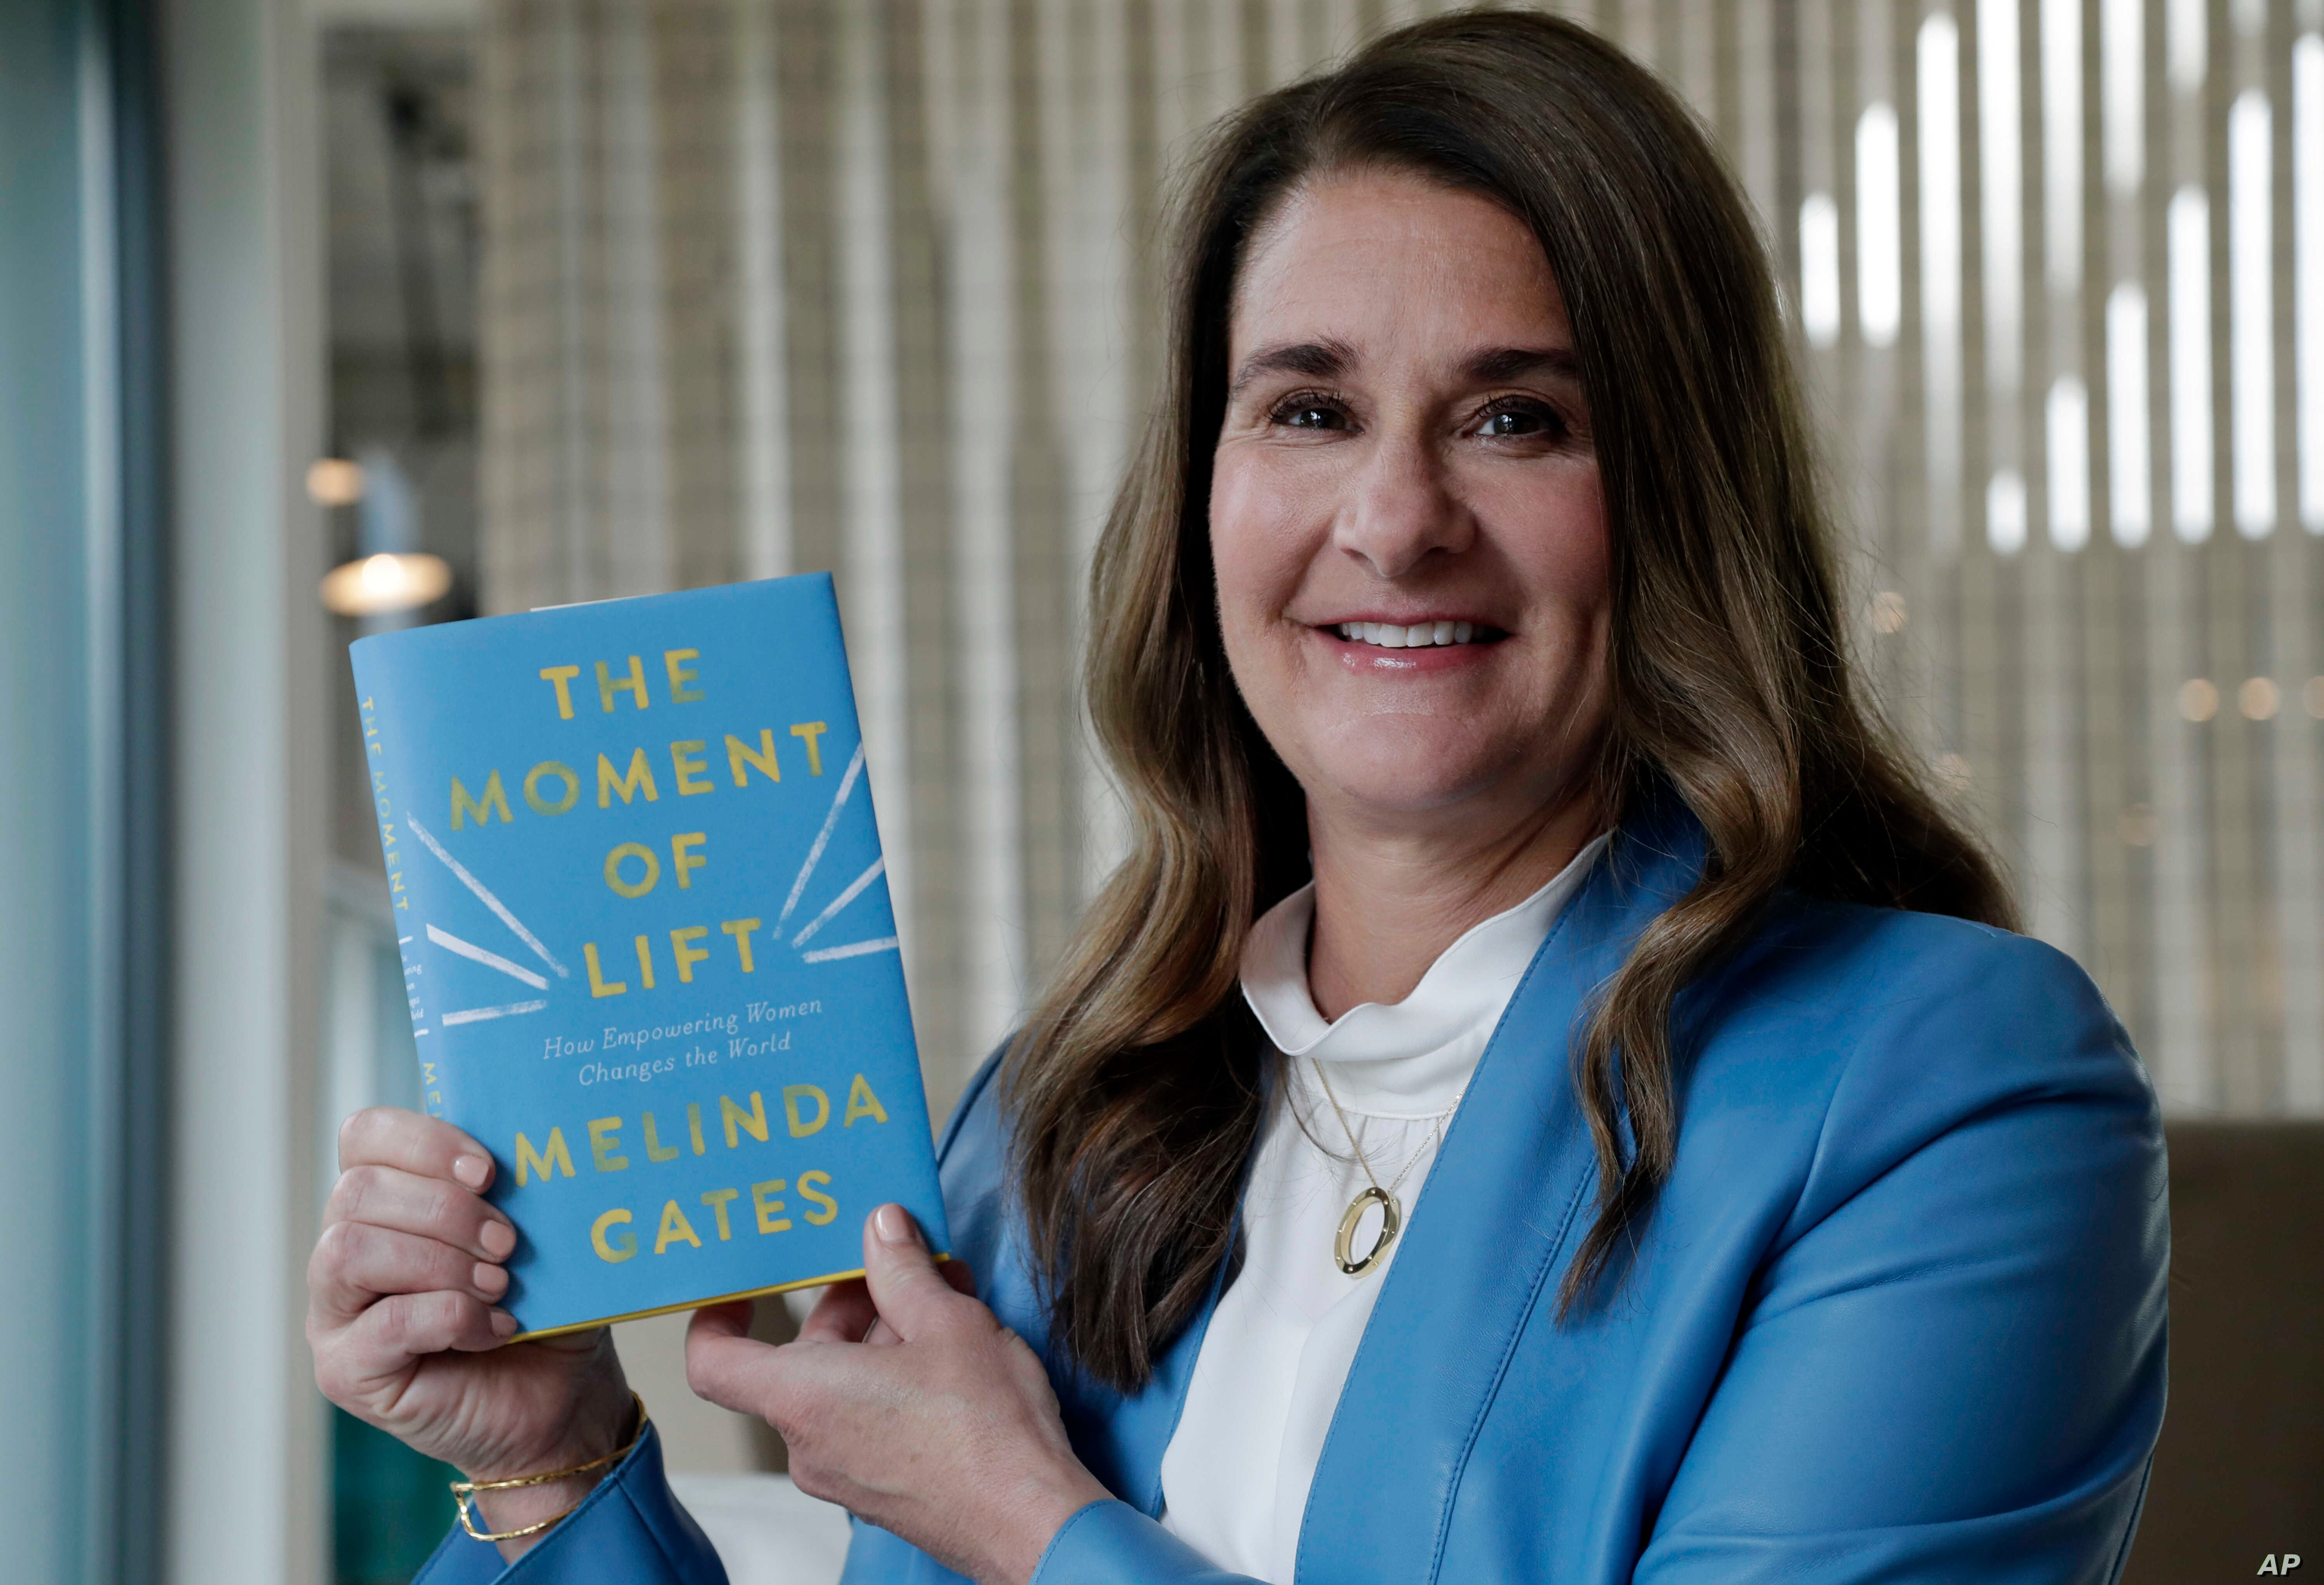 Melinda Gates Speaks To Voa About Women S Empowerment Voice Of America English